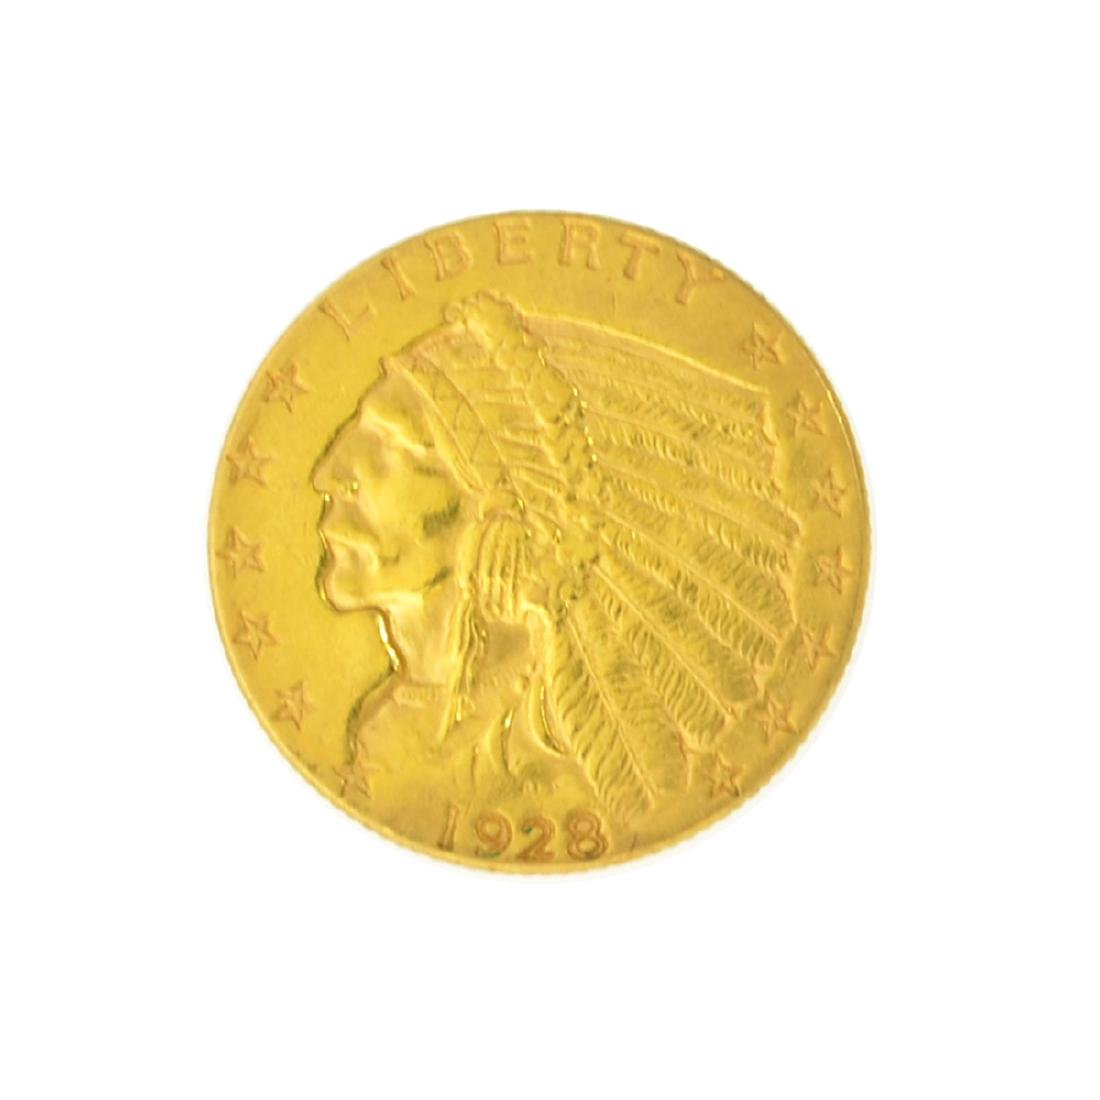 *1928 $2.50 U.S. Indian Head Gold Coin - Great